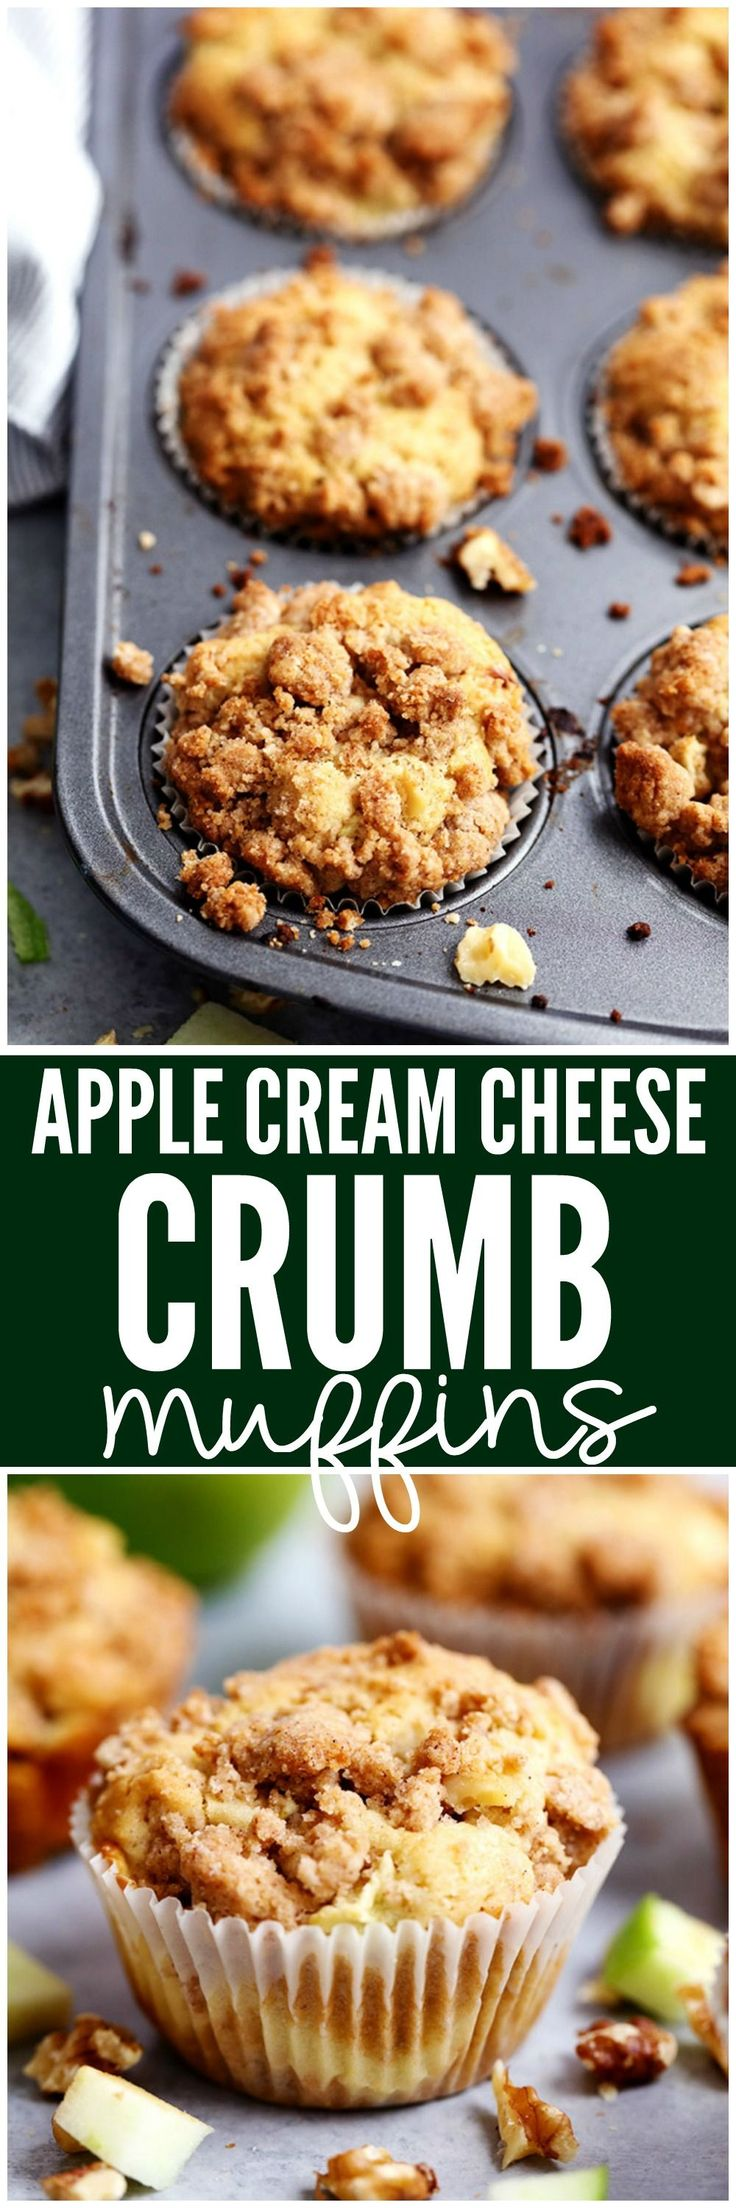 Apple Cream Cheese Crumb Muffins are the perfect buttery and moist apple walnut muffins with a hidden cream cheese center. Topped with a cinnamon sugar crumb topping these are the perfect fall muffins! (Cream Cheese Ideas)